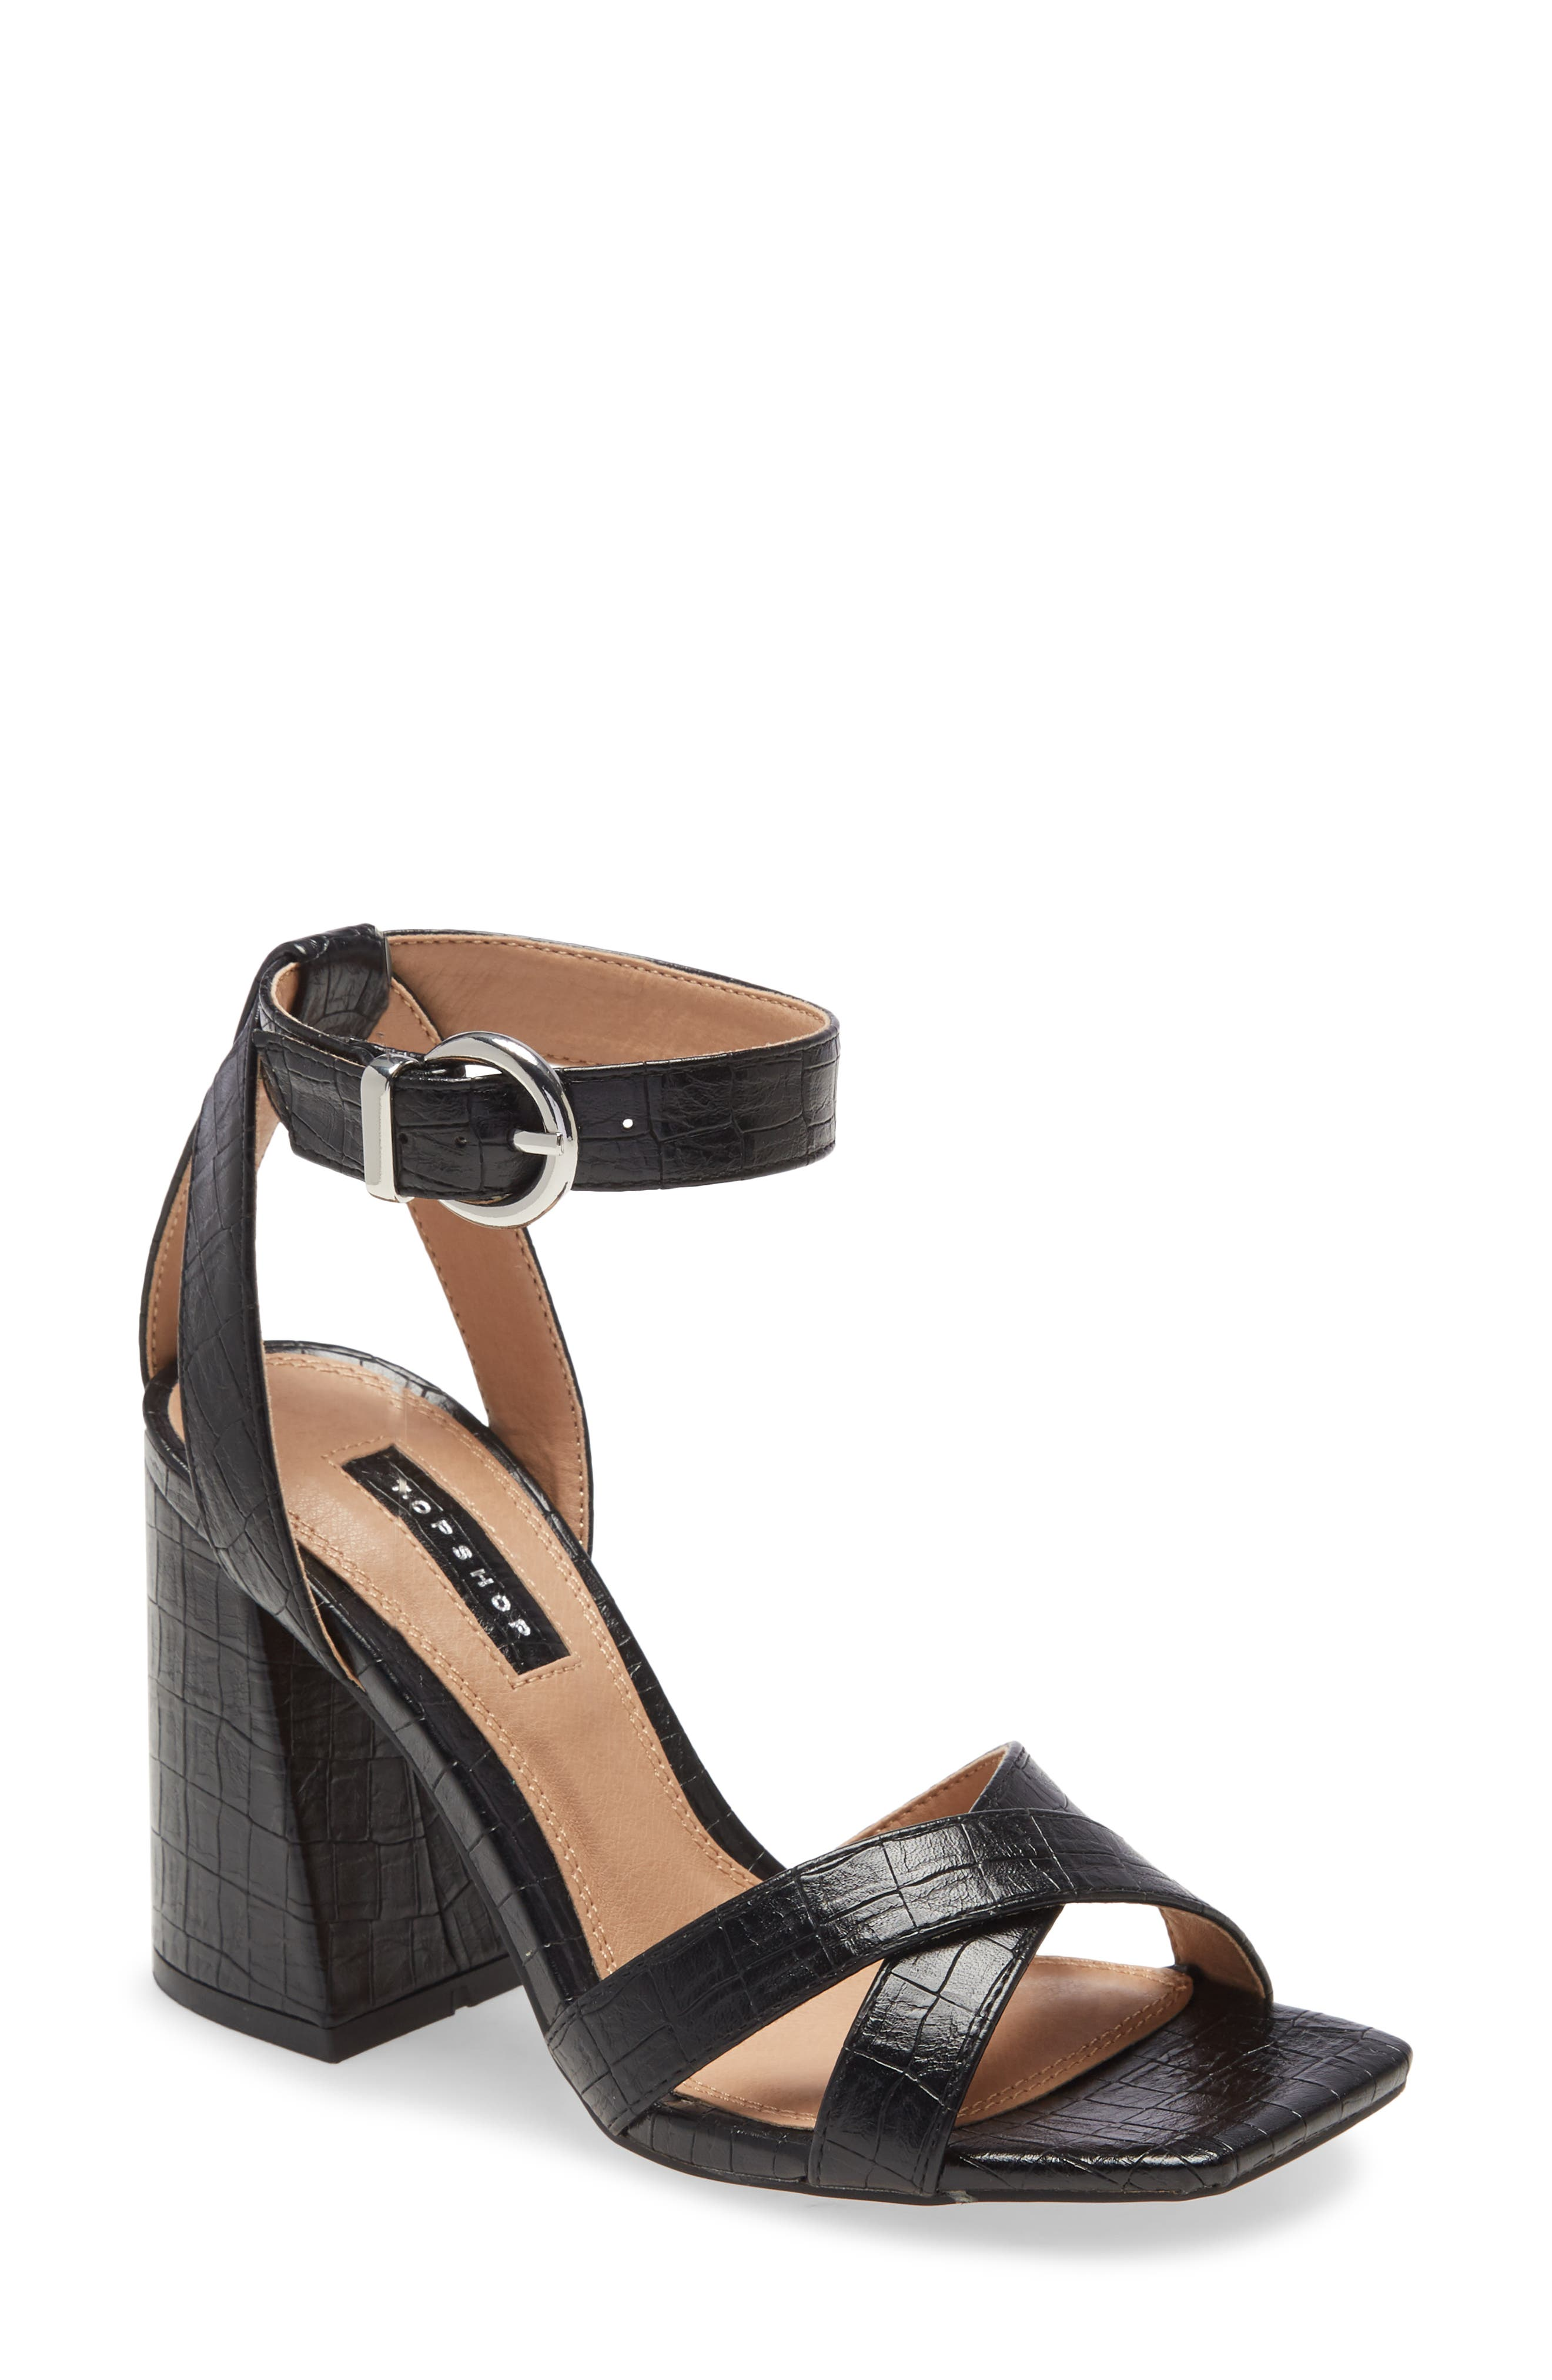 A flared block heel heightens the effect of a strappy sandal finished with glinting hardware and a square toe. Style Name: Topshop Sacha Ankle Strap Block Heel Sandal (Women). Style Number: 6037745. Available in stores.